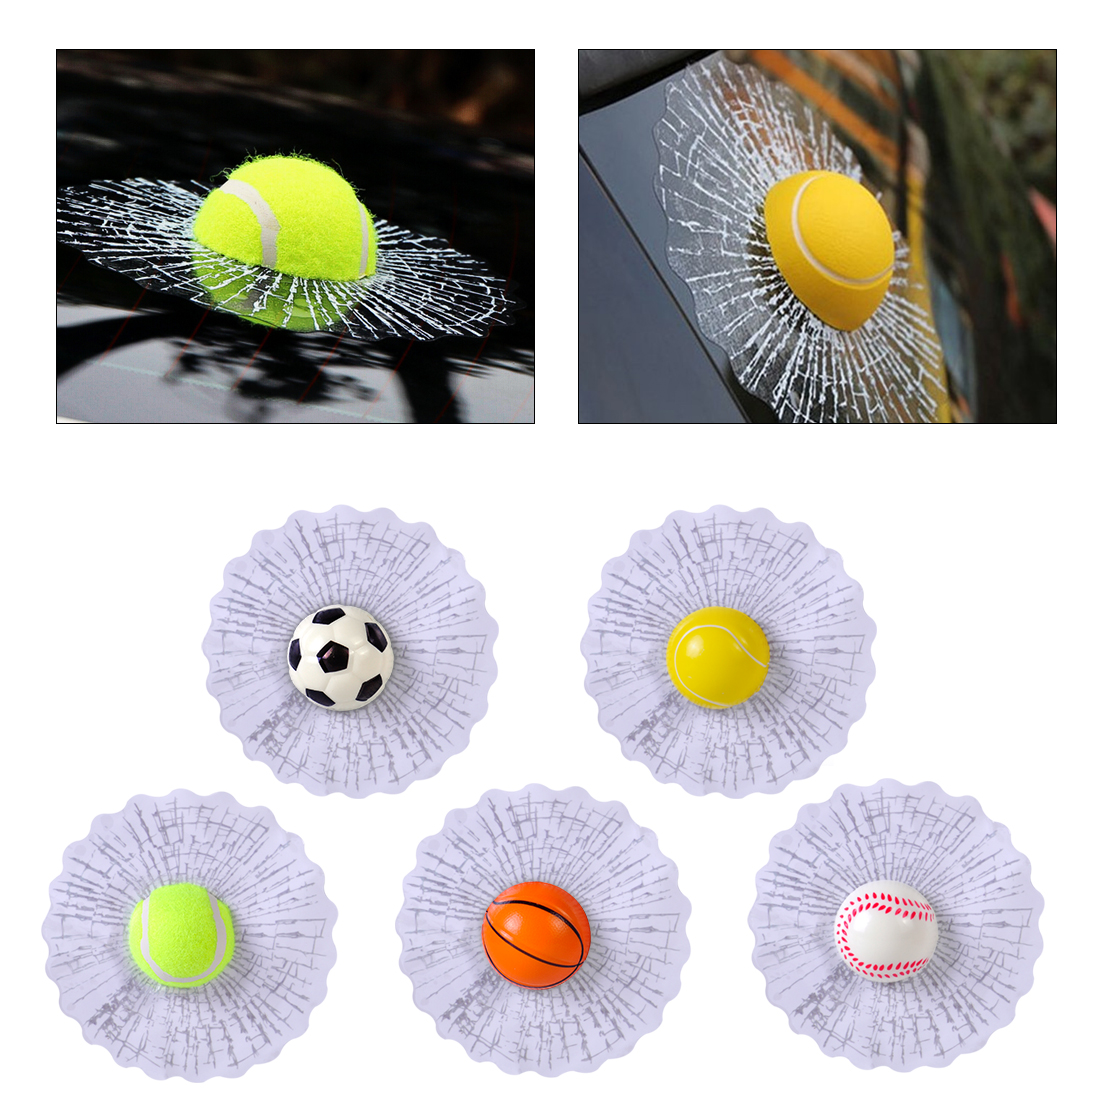 beler New Creative Funny 3D Hit Window Car Sticker Auto Windshield Glass Surface Decoration Car Styling Accessories Stickers